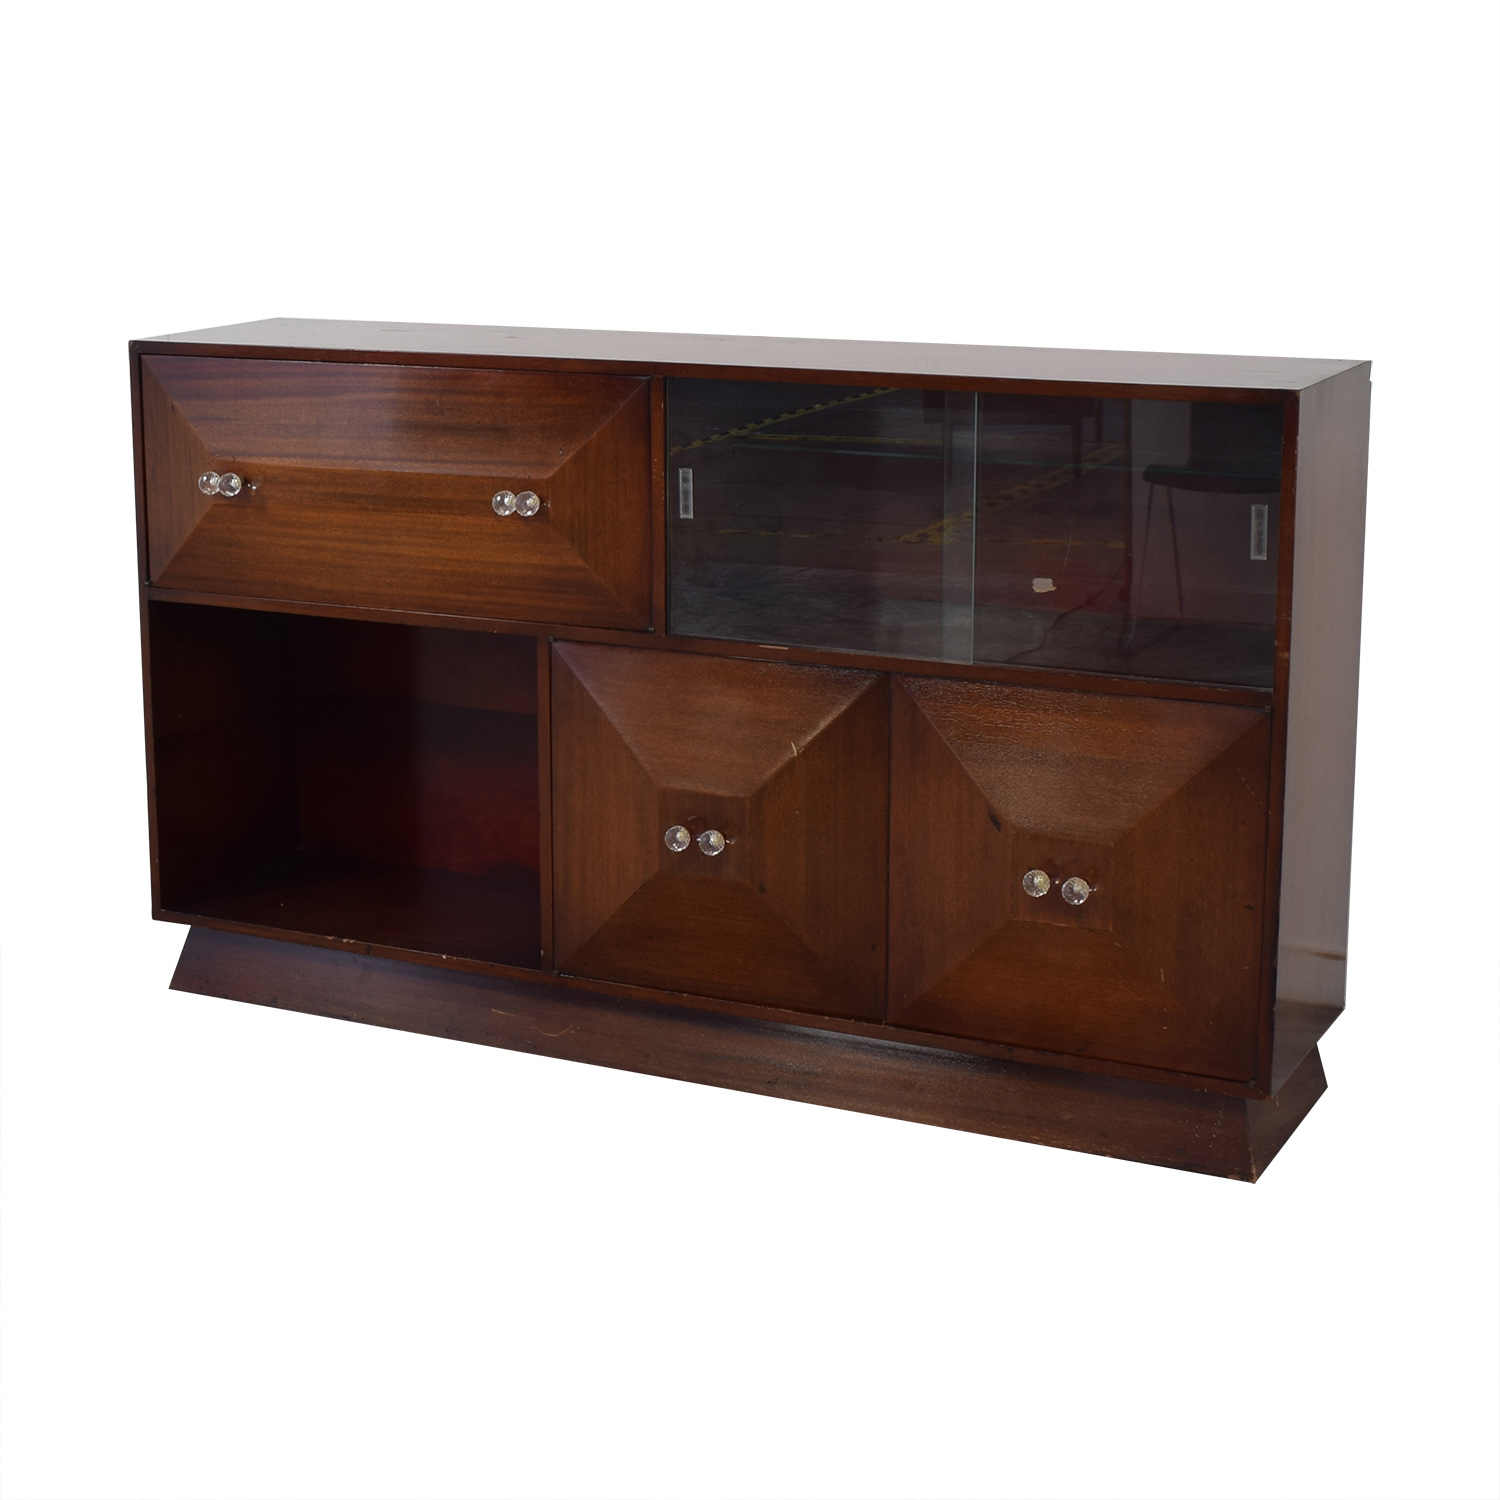 Mid Century Bar Sideboard with Bar dimensions